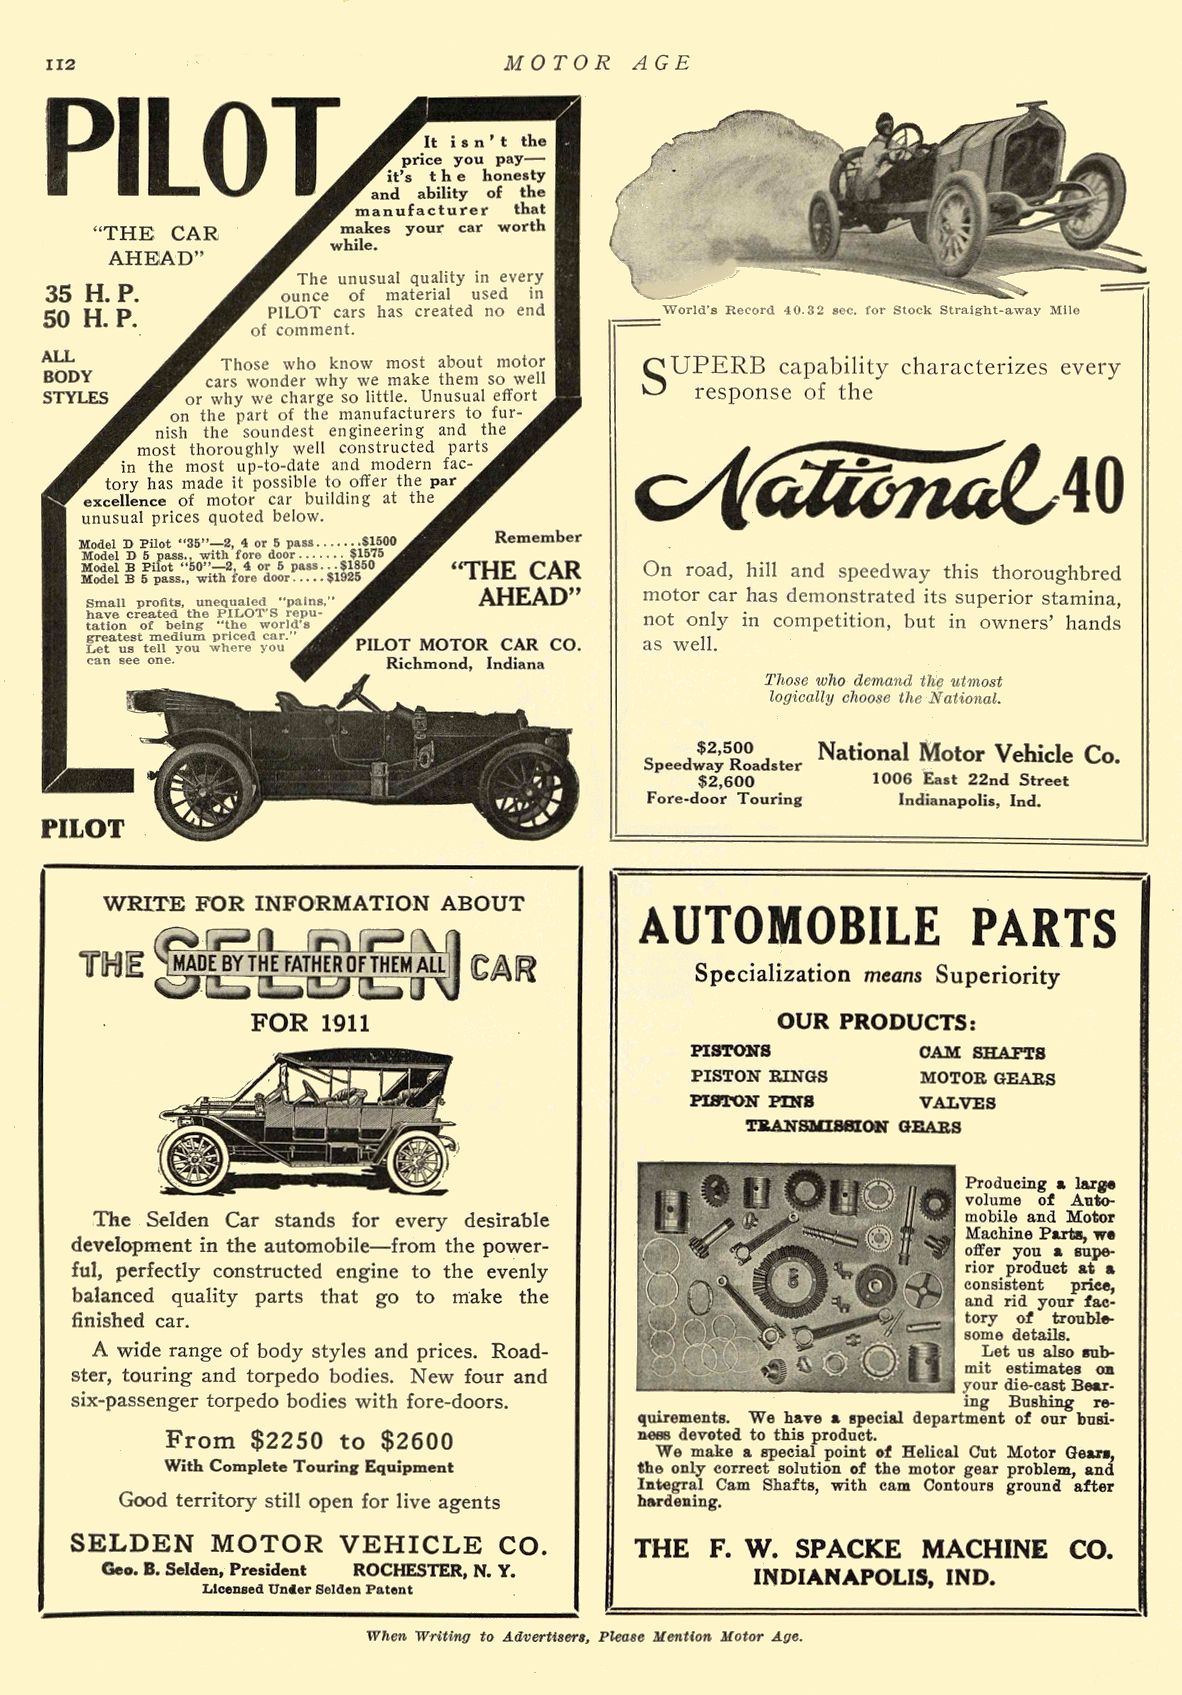 1911 6 15 NATIONAL National 40 National Motor Vehicle Co. Indianapolis, IND MOTOR AGE June 15, 1911 8.5″x12″ page 112